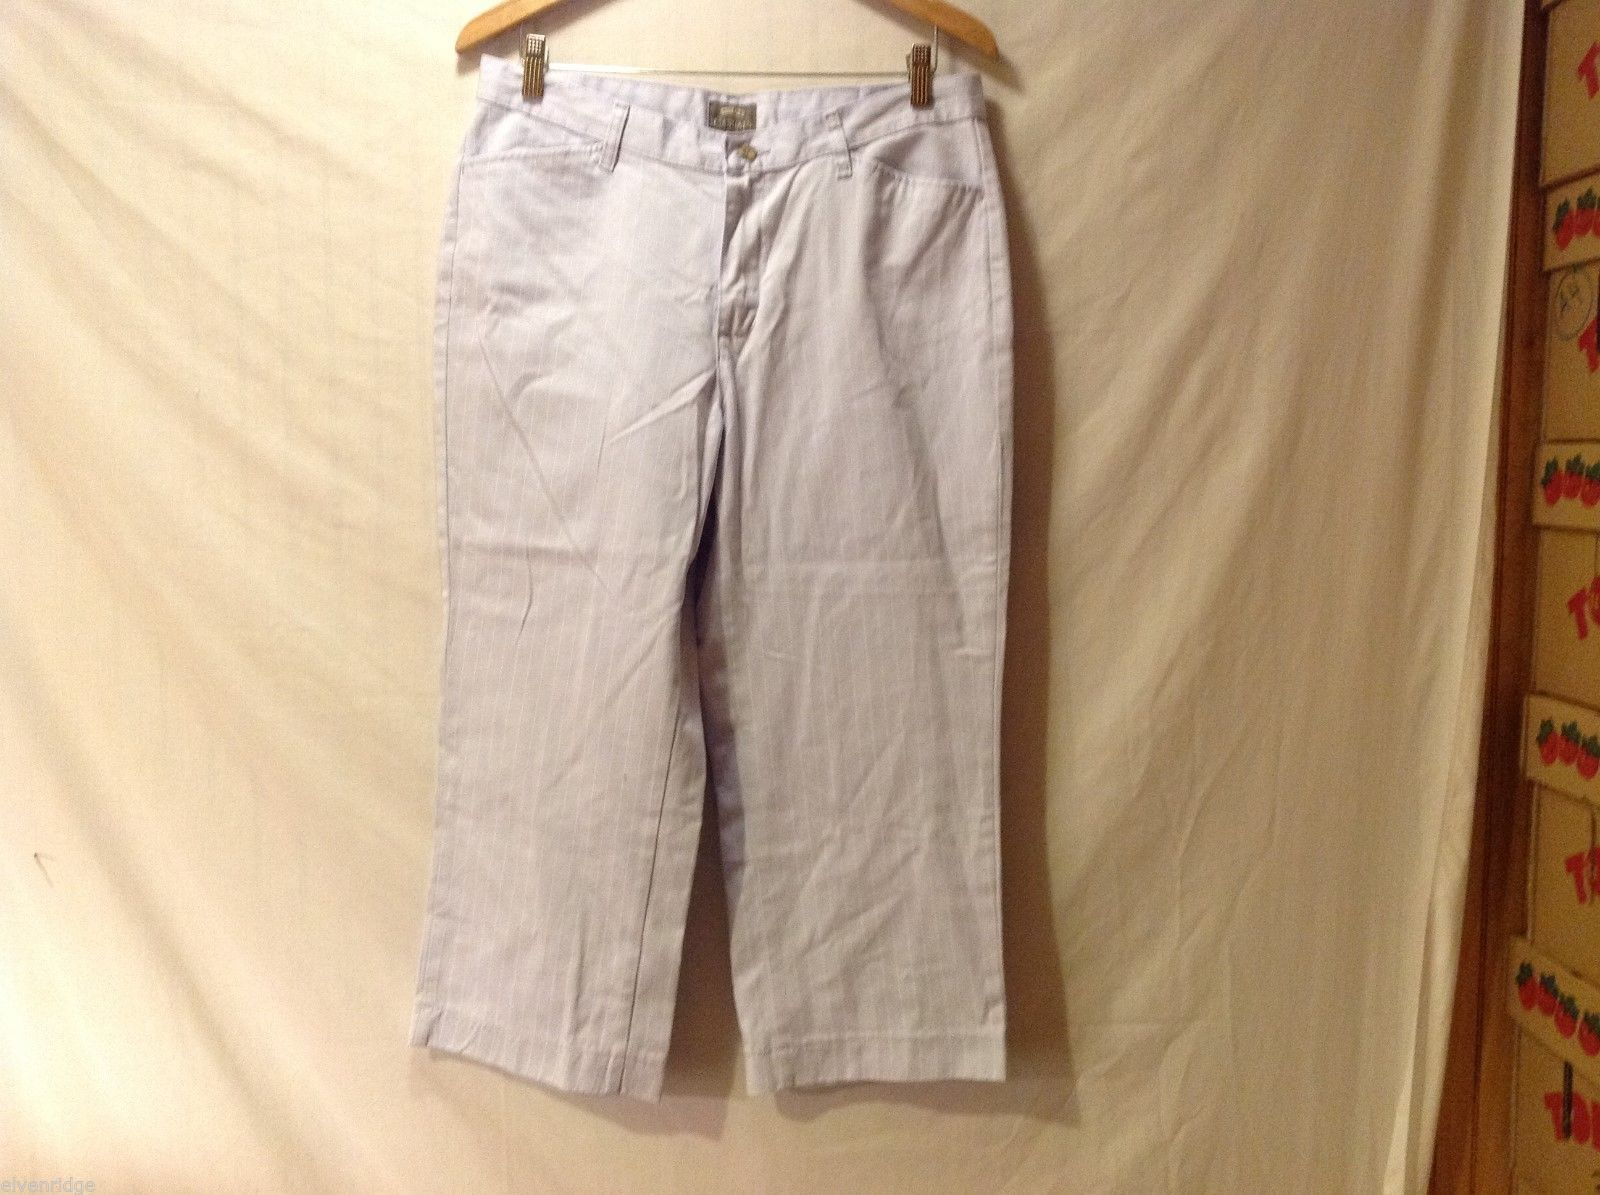 Rider's Casual Womens White Pinstriped Capris, Size 14M